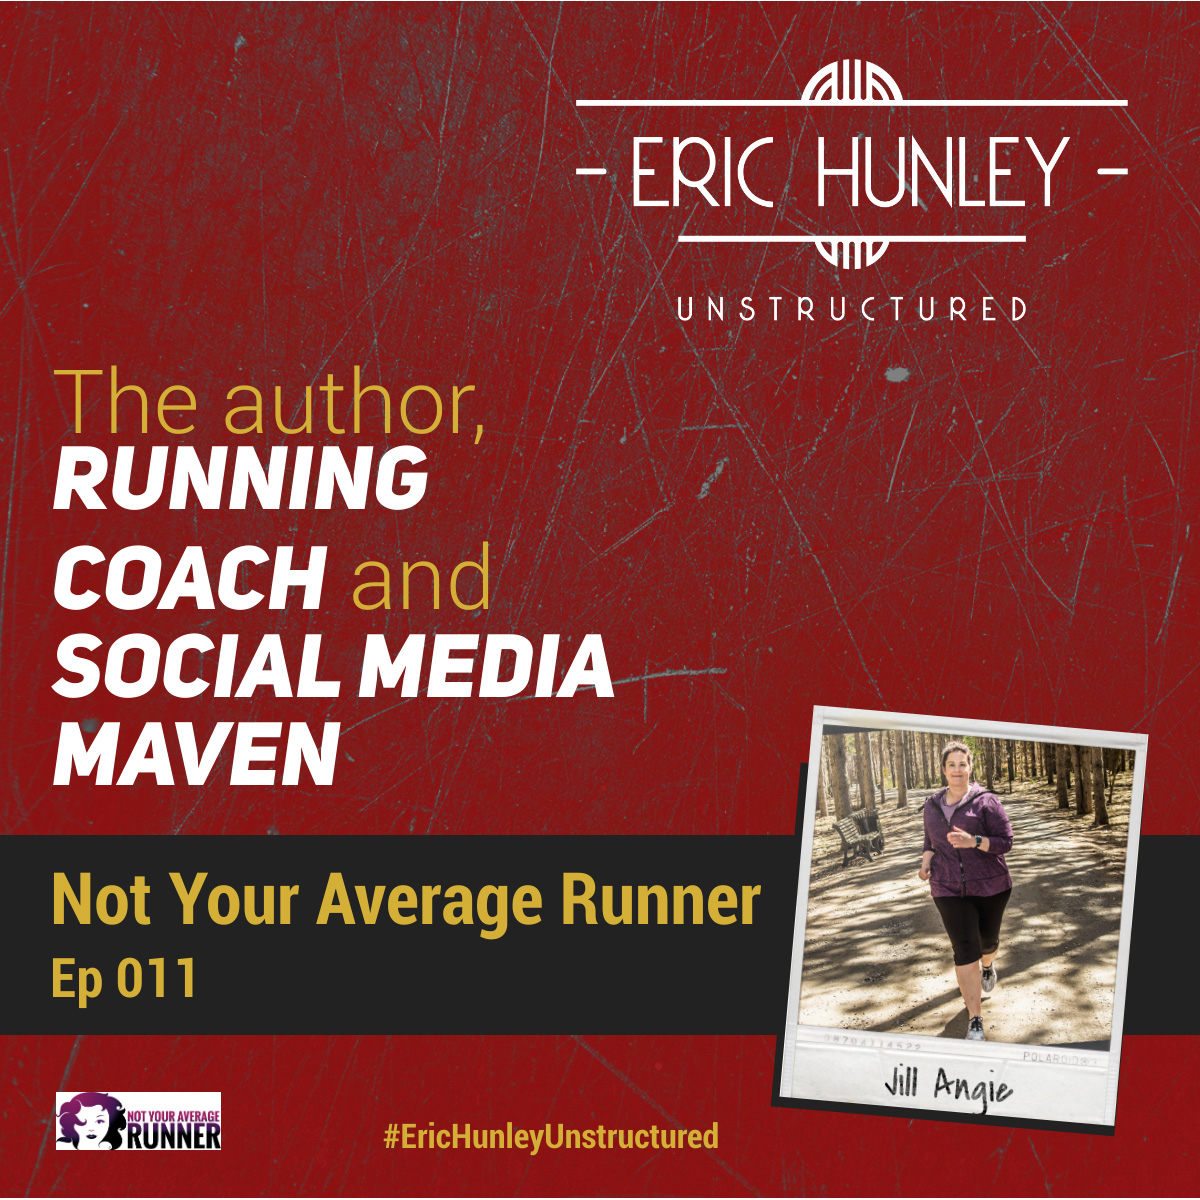 Eric Hunley Unstructured Podcast - 011 Jill Angie Square Post